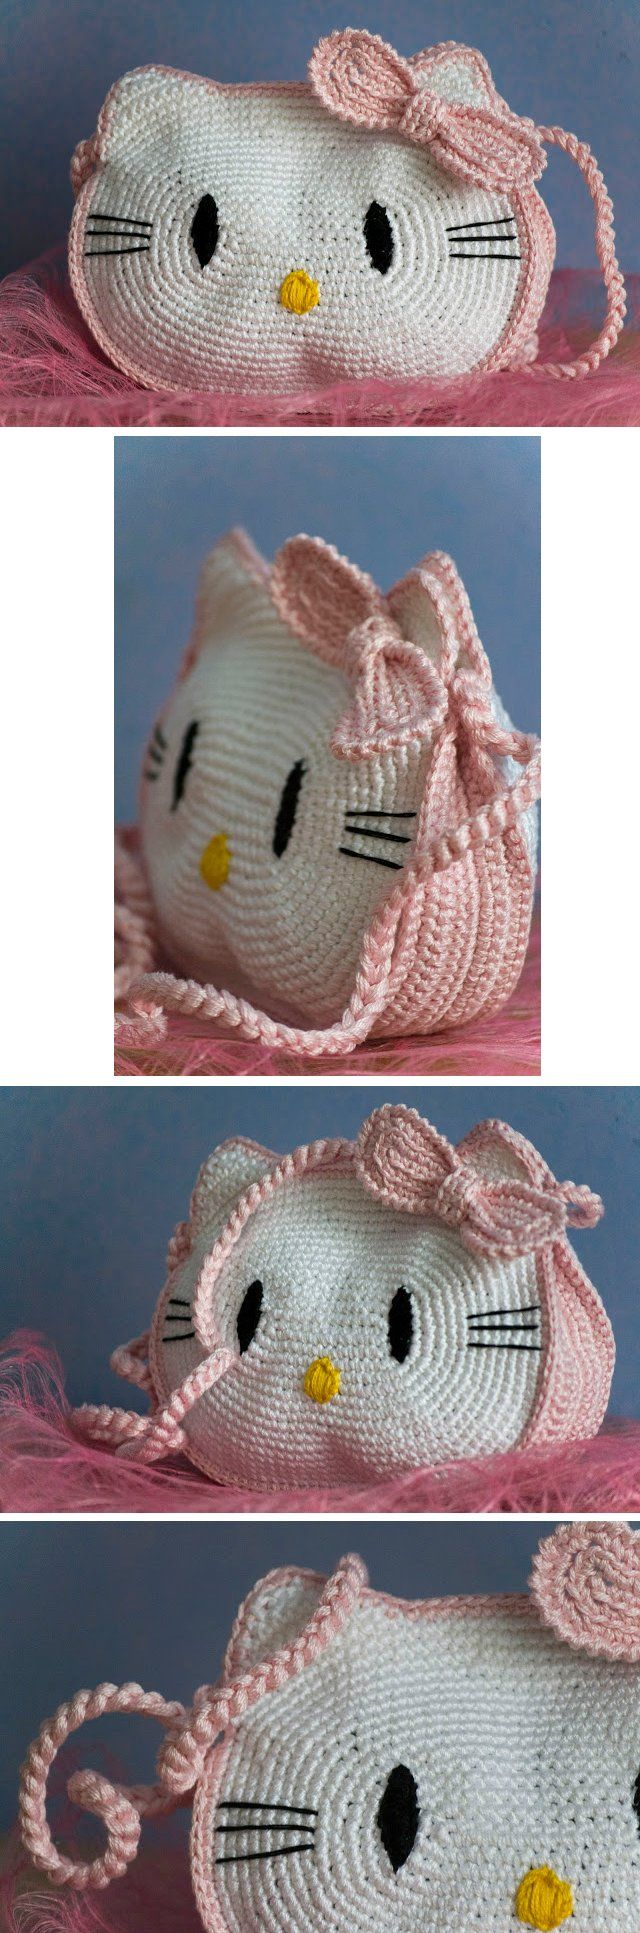 Hello Kitty purse - *Inspiration* It looks pretty easy if you break it down, 2 large ovals, add ears, sides and bow made in pink and all stitched together in the same pink with a pink strap. You could embroider on the facial features or glue on felt.